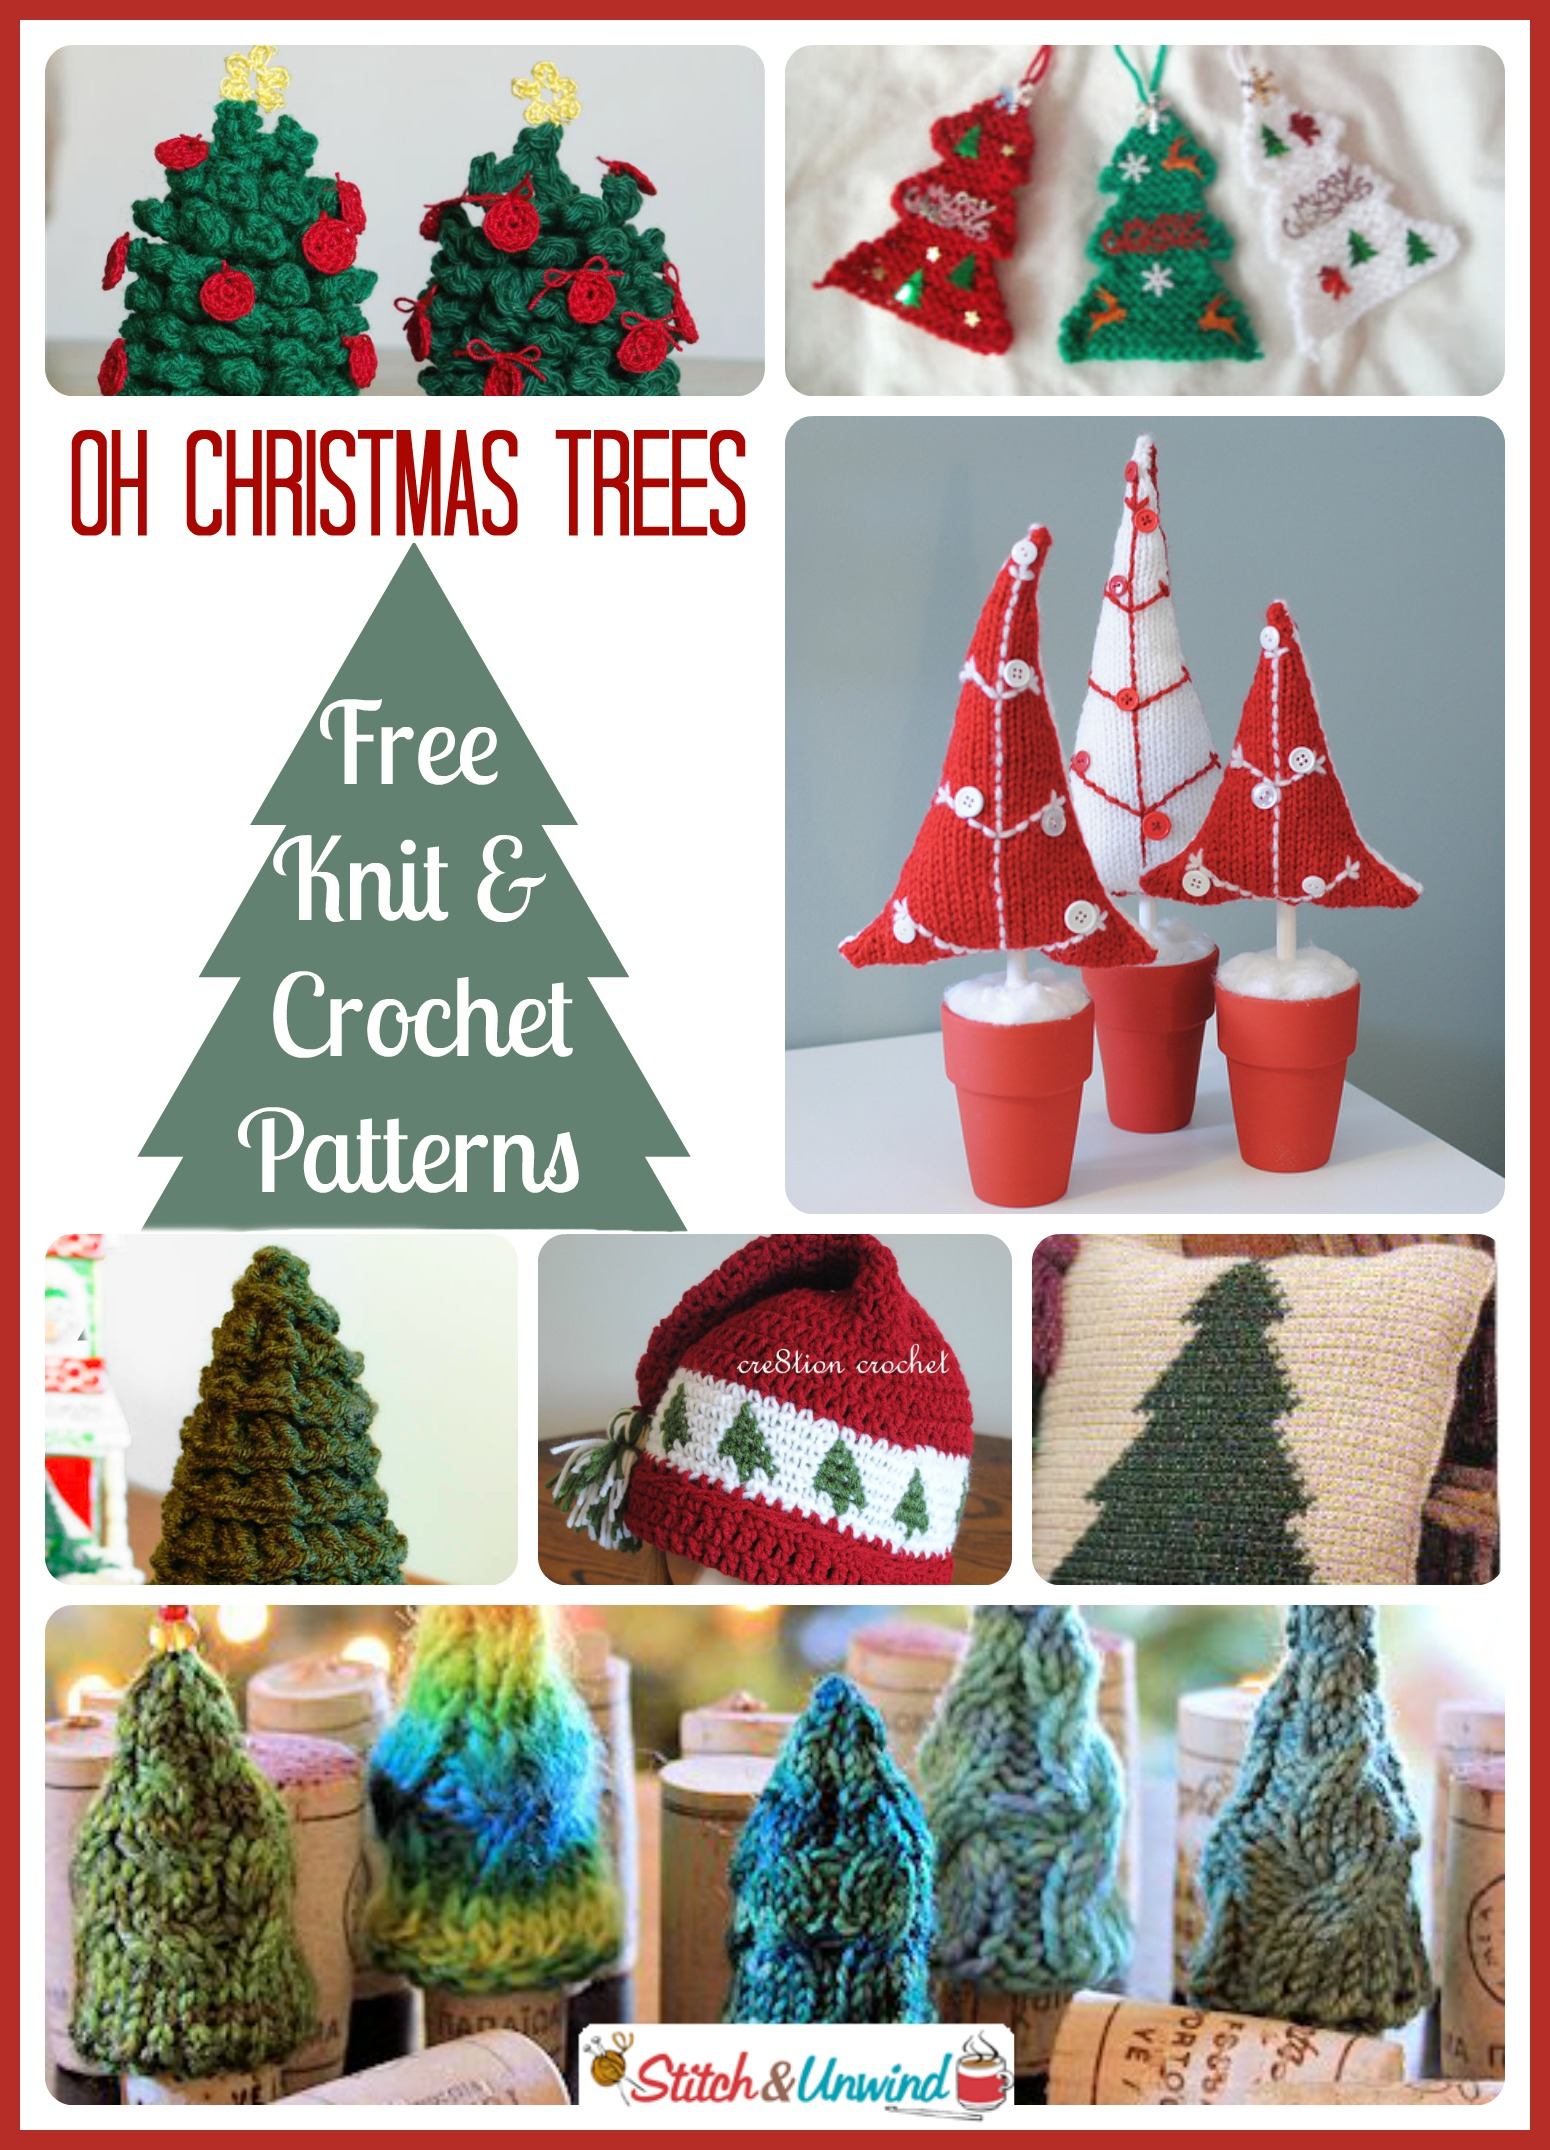 Free Online Christmas Crochet Afghan Patterns : Oh Christmas Trees: Lovely Knit & Crochet Patterns ...